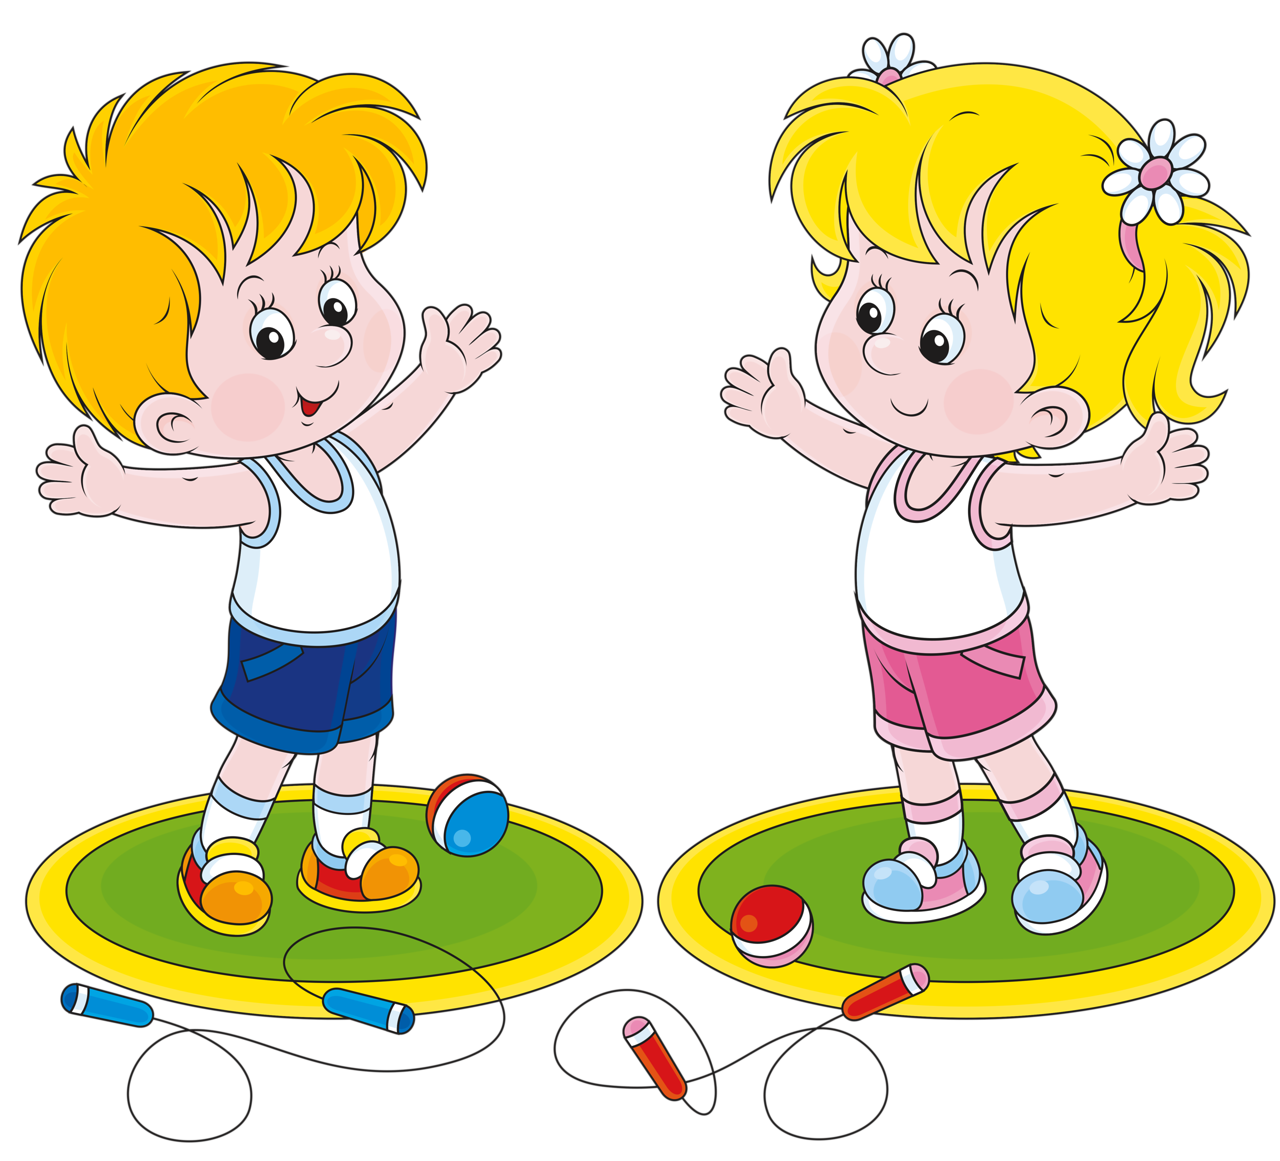 Kids playing on school playground clipart graphic library library shutterstock_289157930 [преобразованный].png | Pinterest | Clip art ... graphic library library